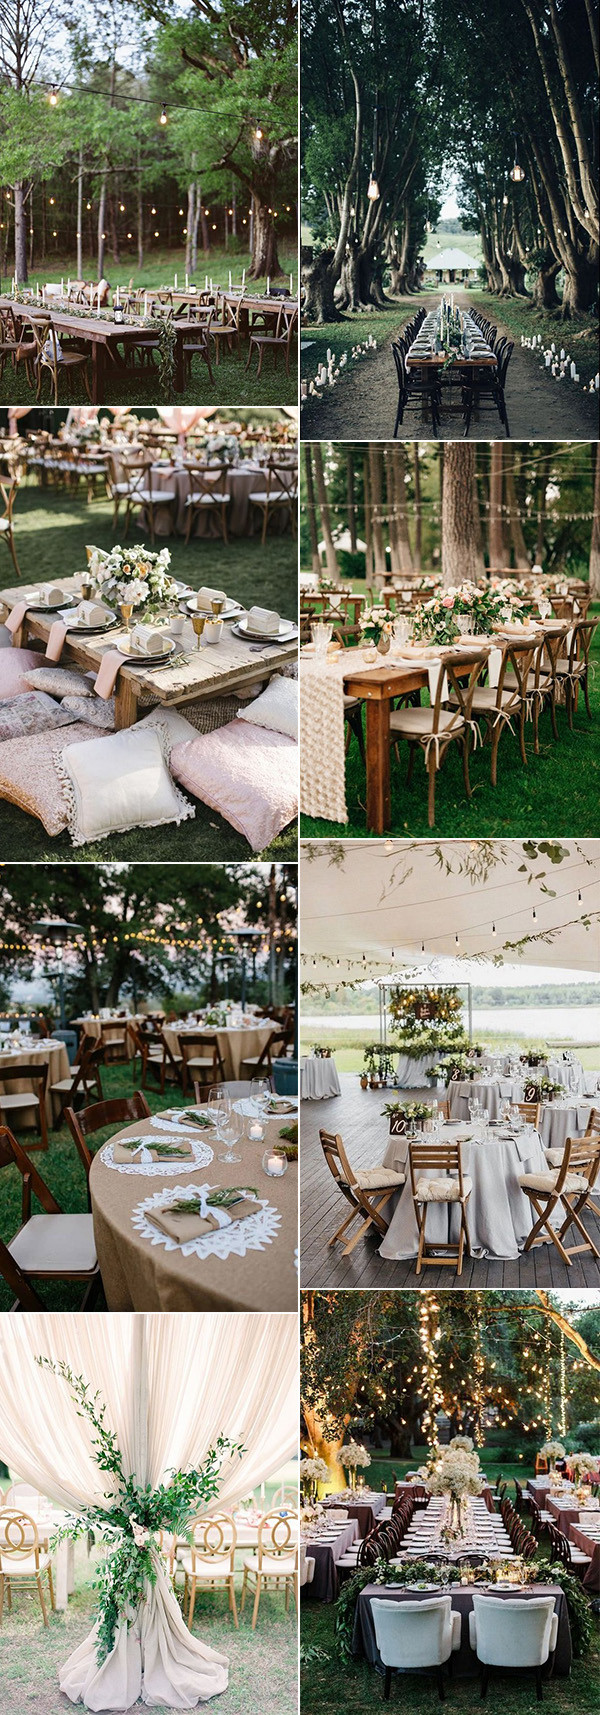 boho chic outdoor wedding reception decoration ideas